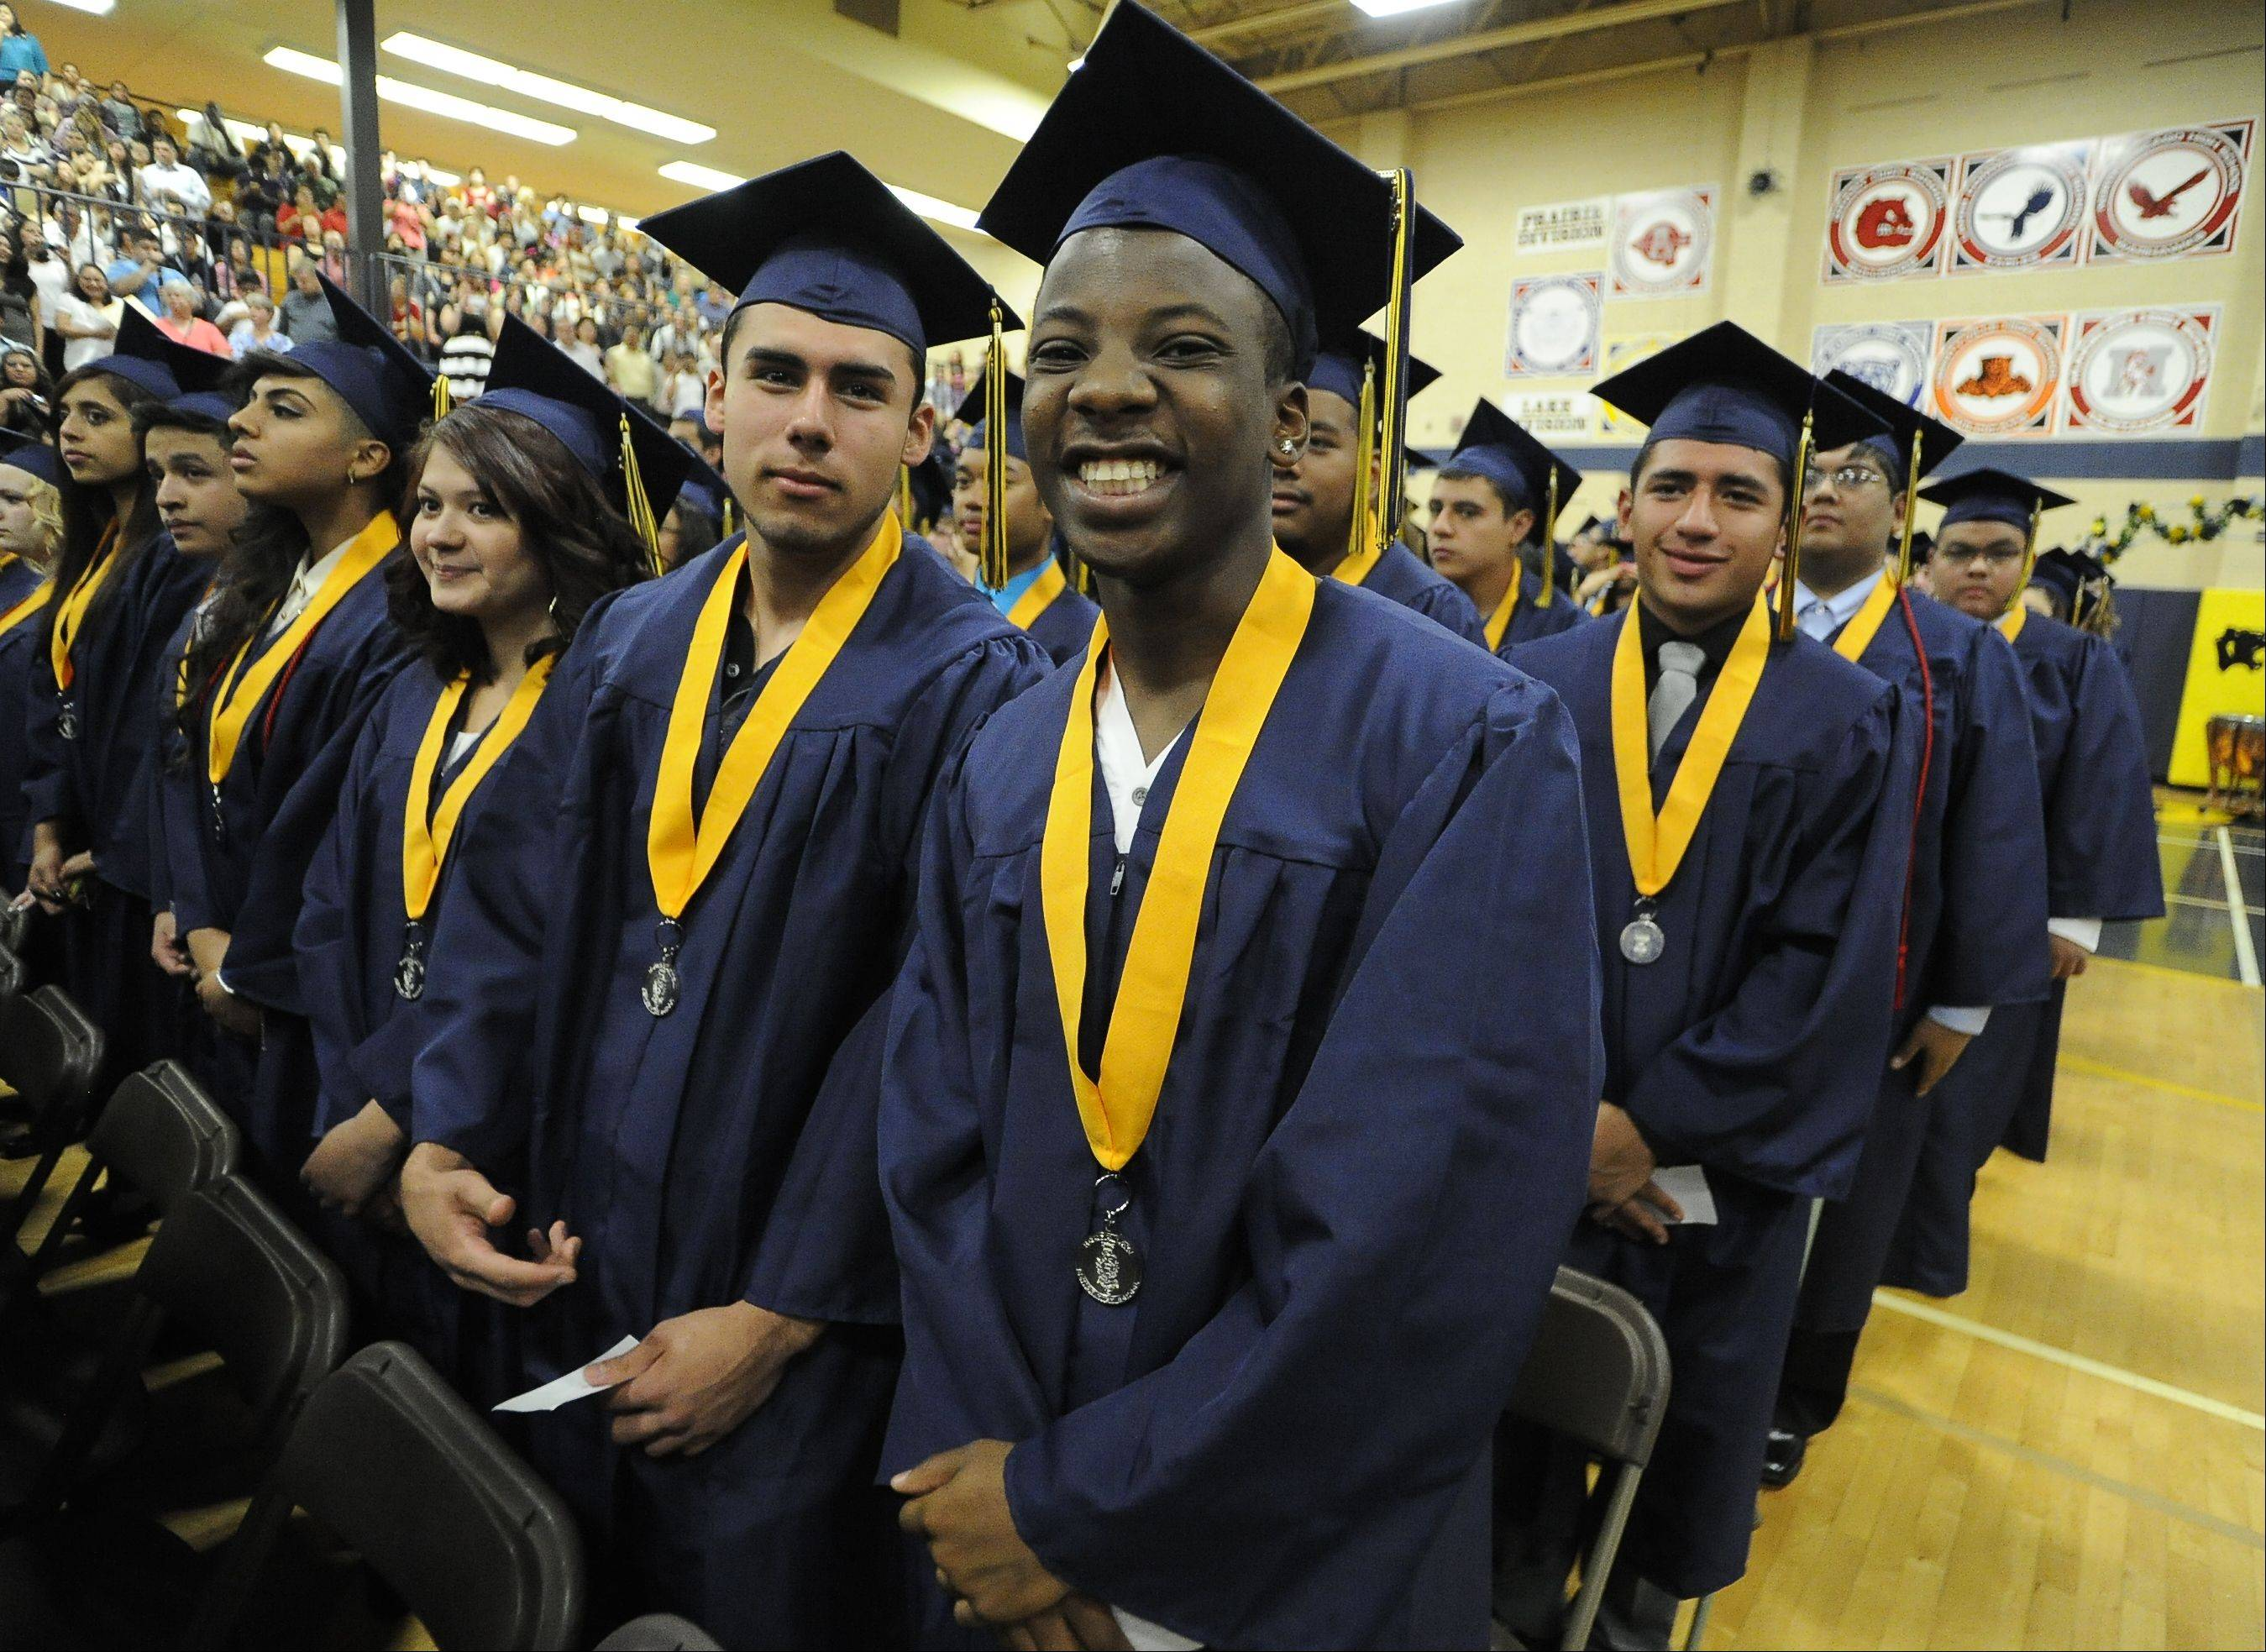 Images from the Round Lake High School graduation on Saturday, May 18 in Round Lake.